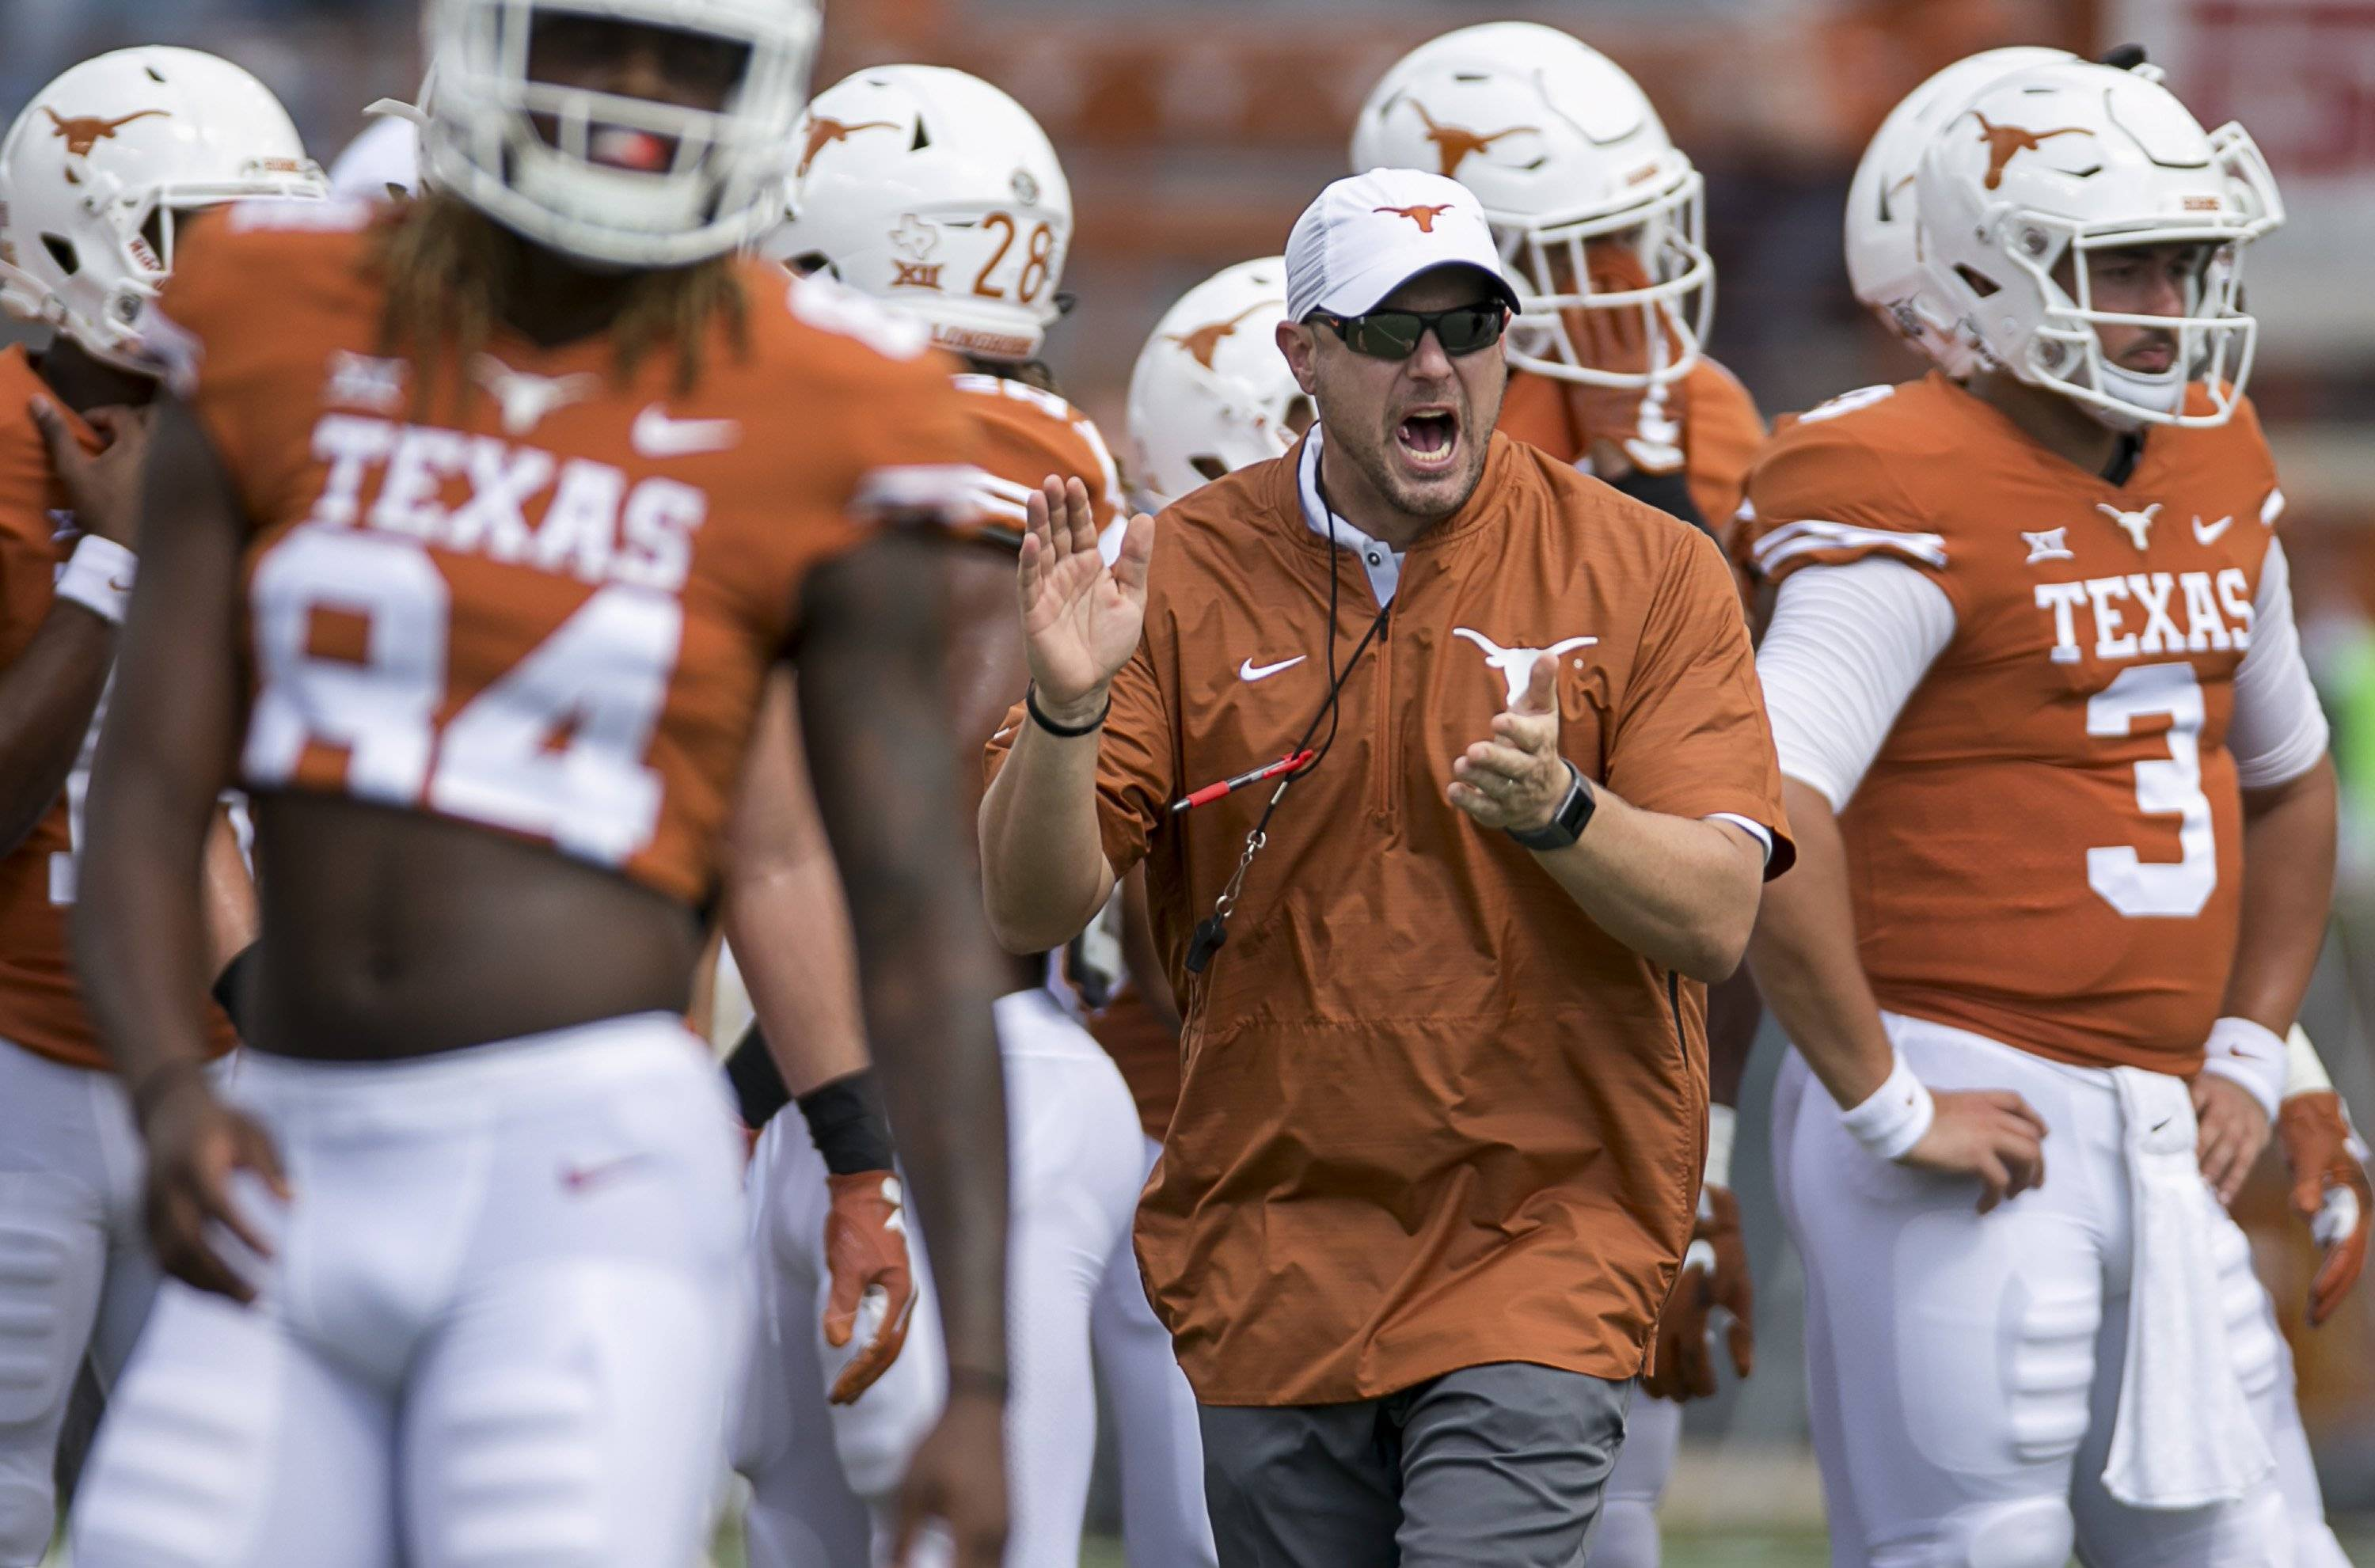 The Whys Of Texas Benching Starters Isn T Popular But For